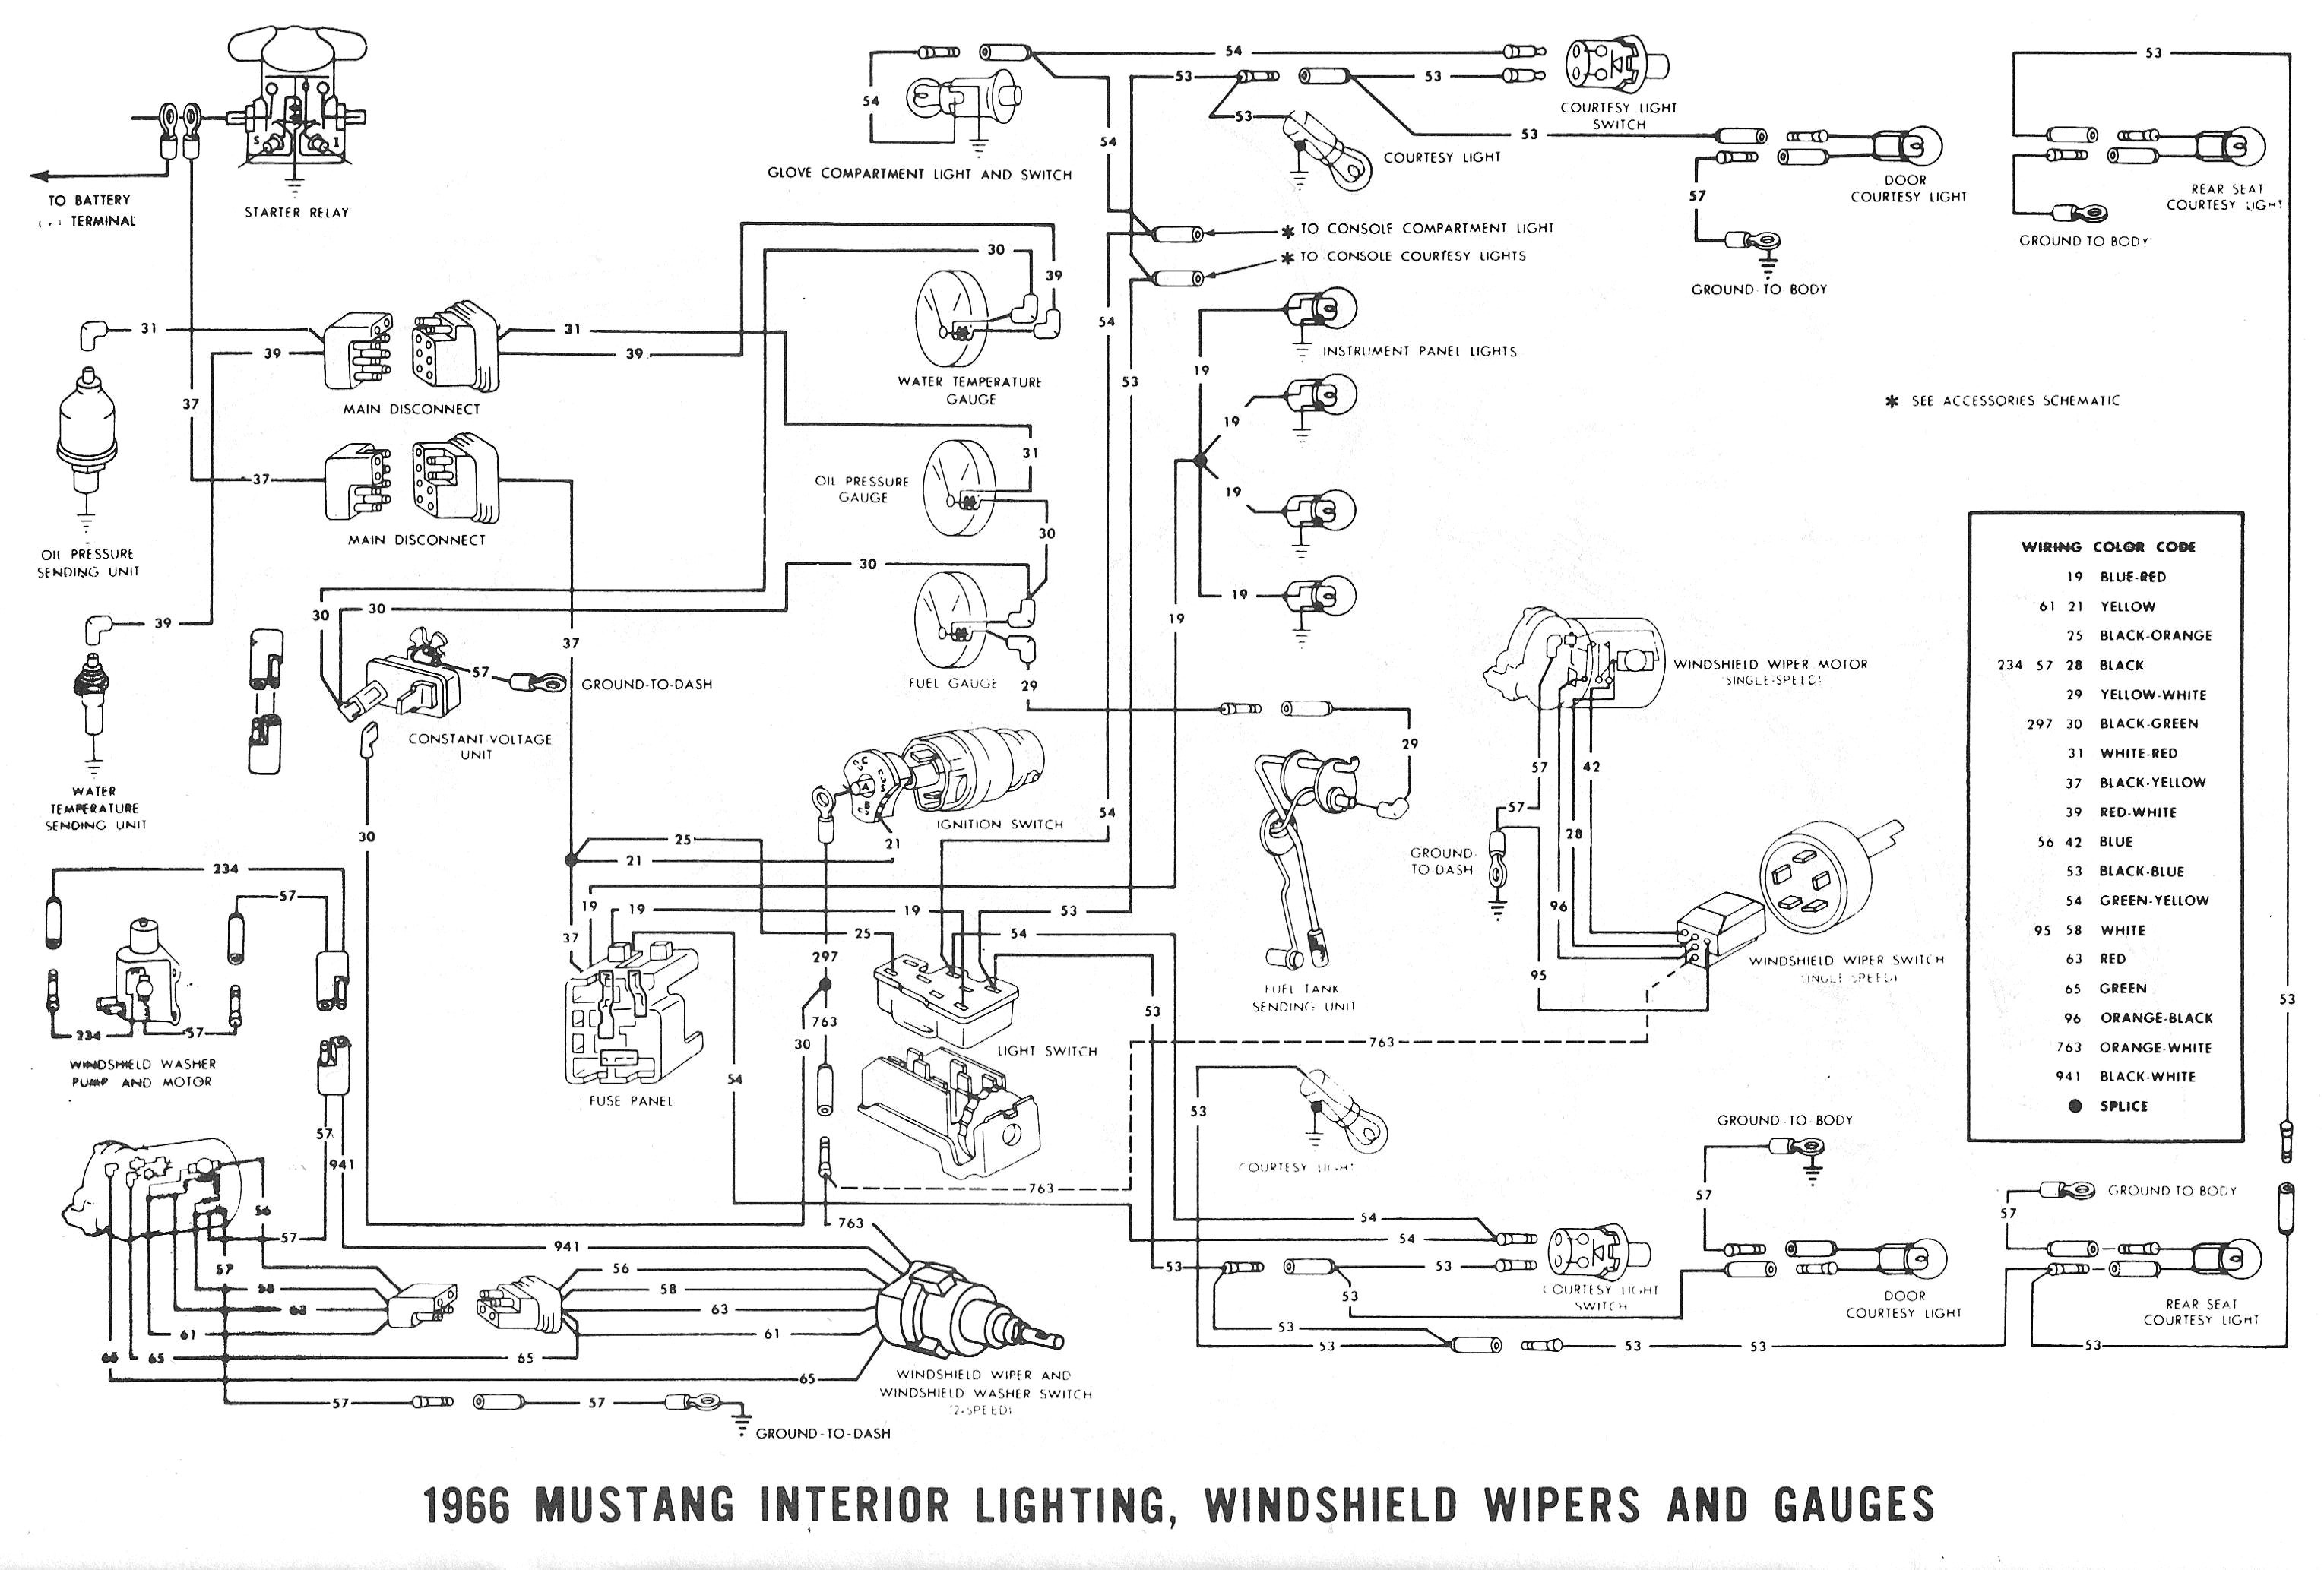 1966 mustang wiring diagram pdf wiring diagram table 1966 Mustang Radio Wiring Diagram